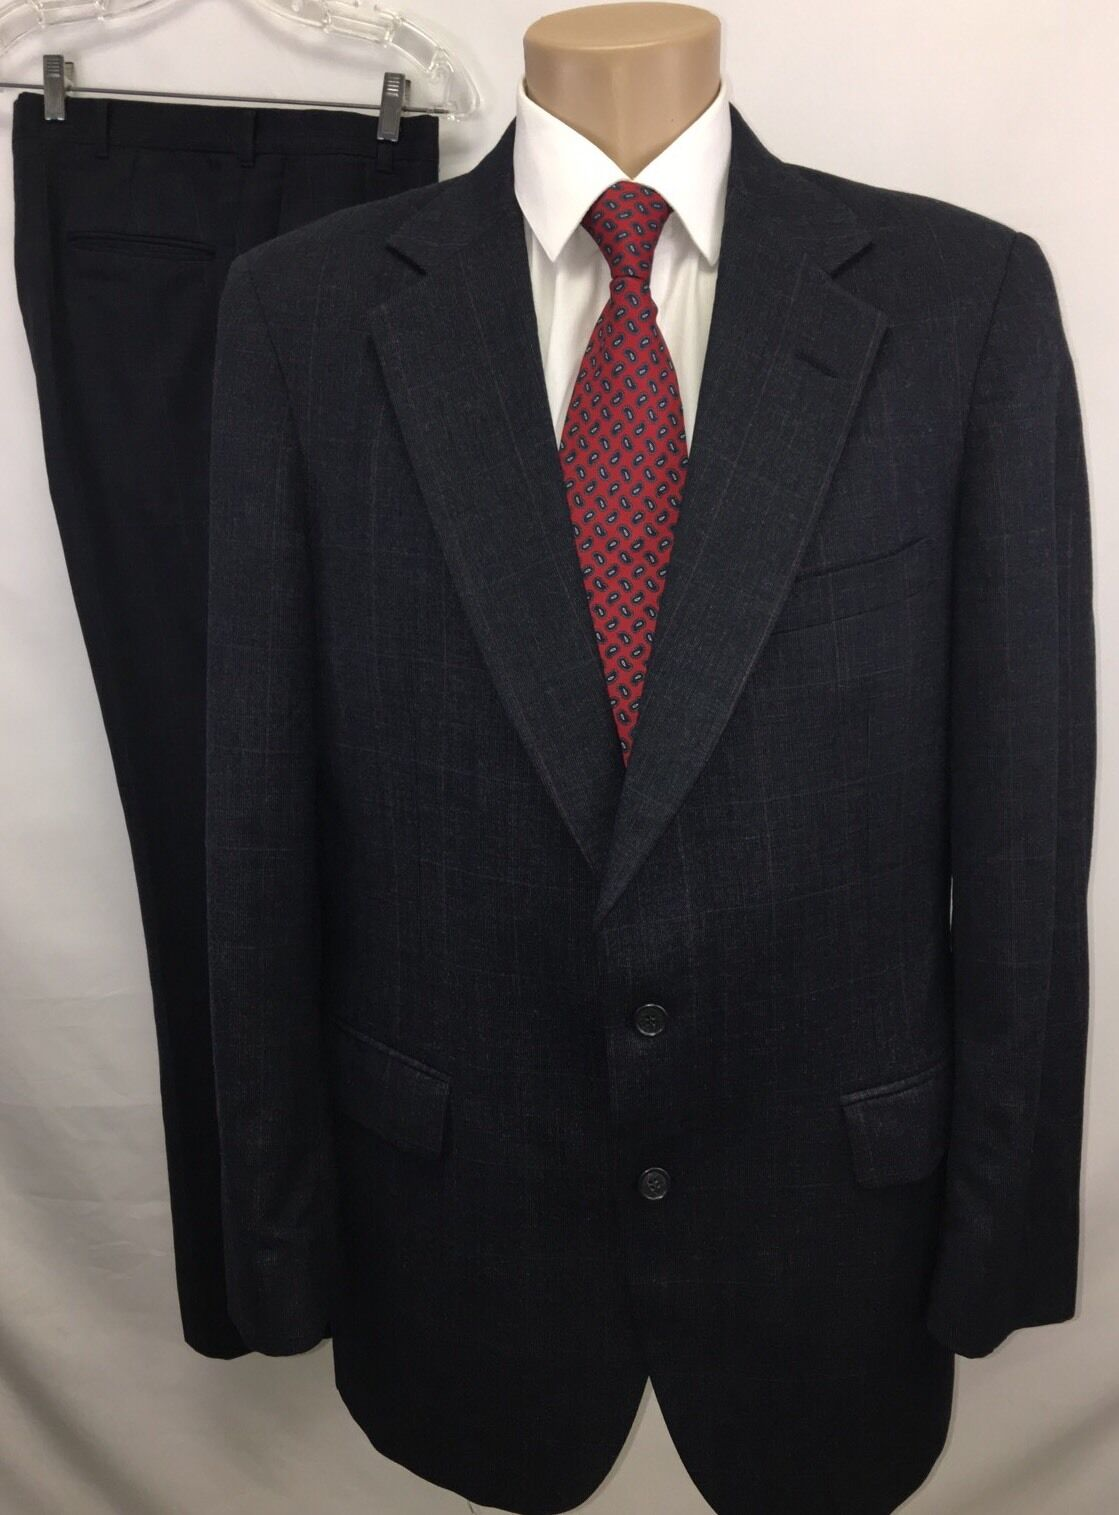 VINTAGE ALLYN ST. GEORGE  Herren 2PC WOOL 2 BTN SUIT CHARCOAL WINDOW PANE SZ 40R